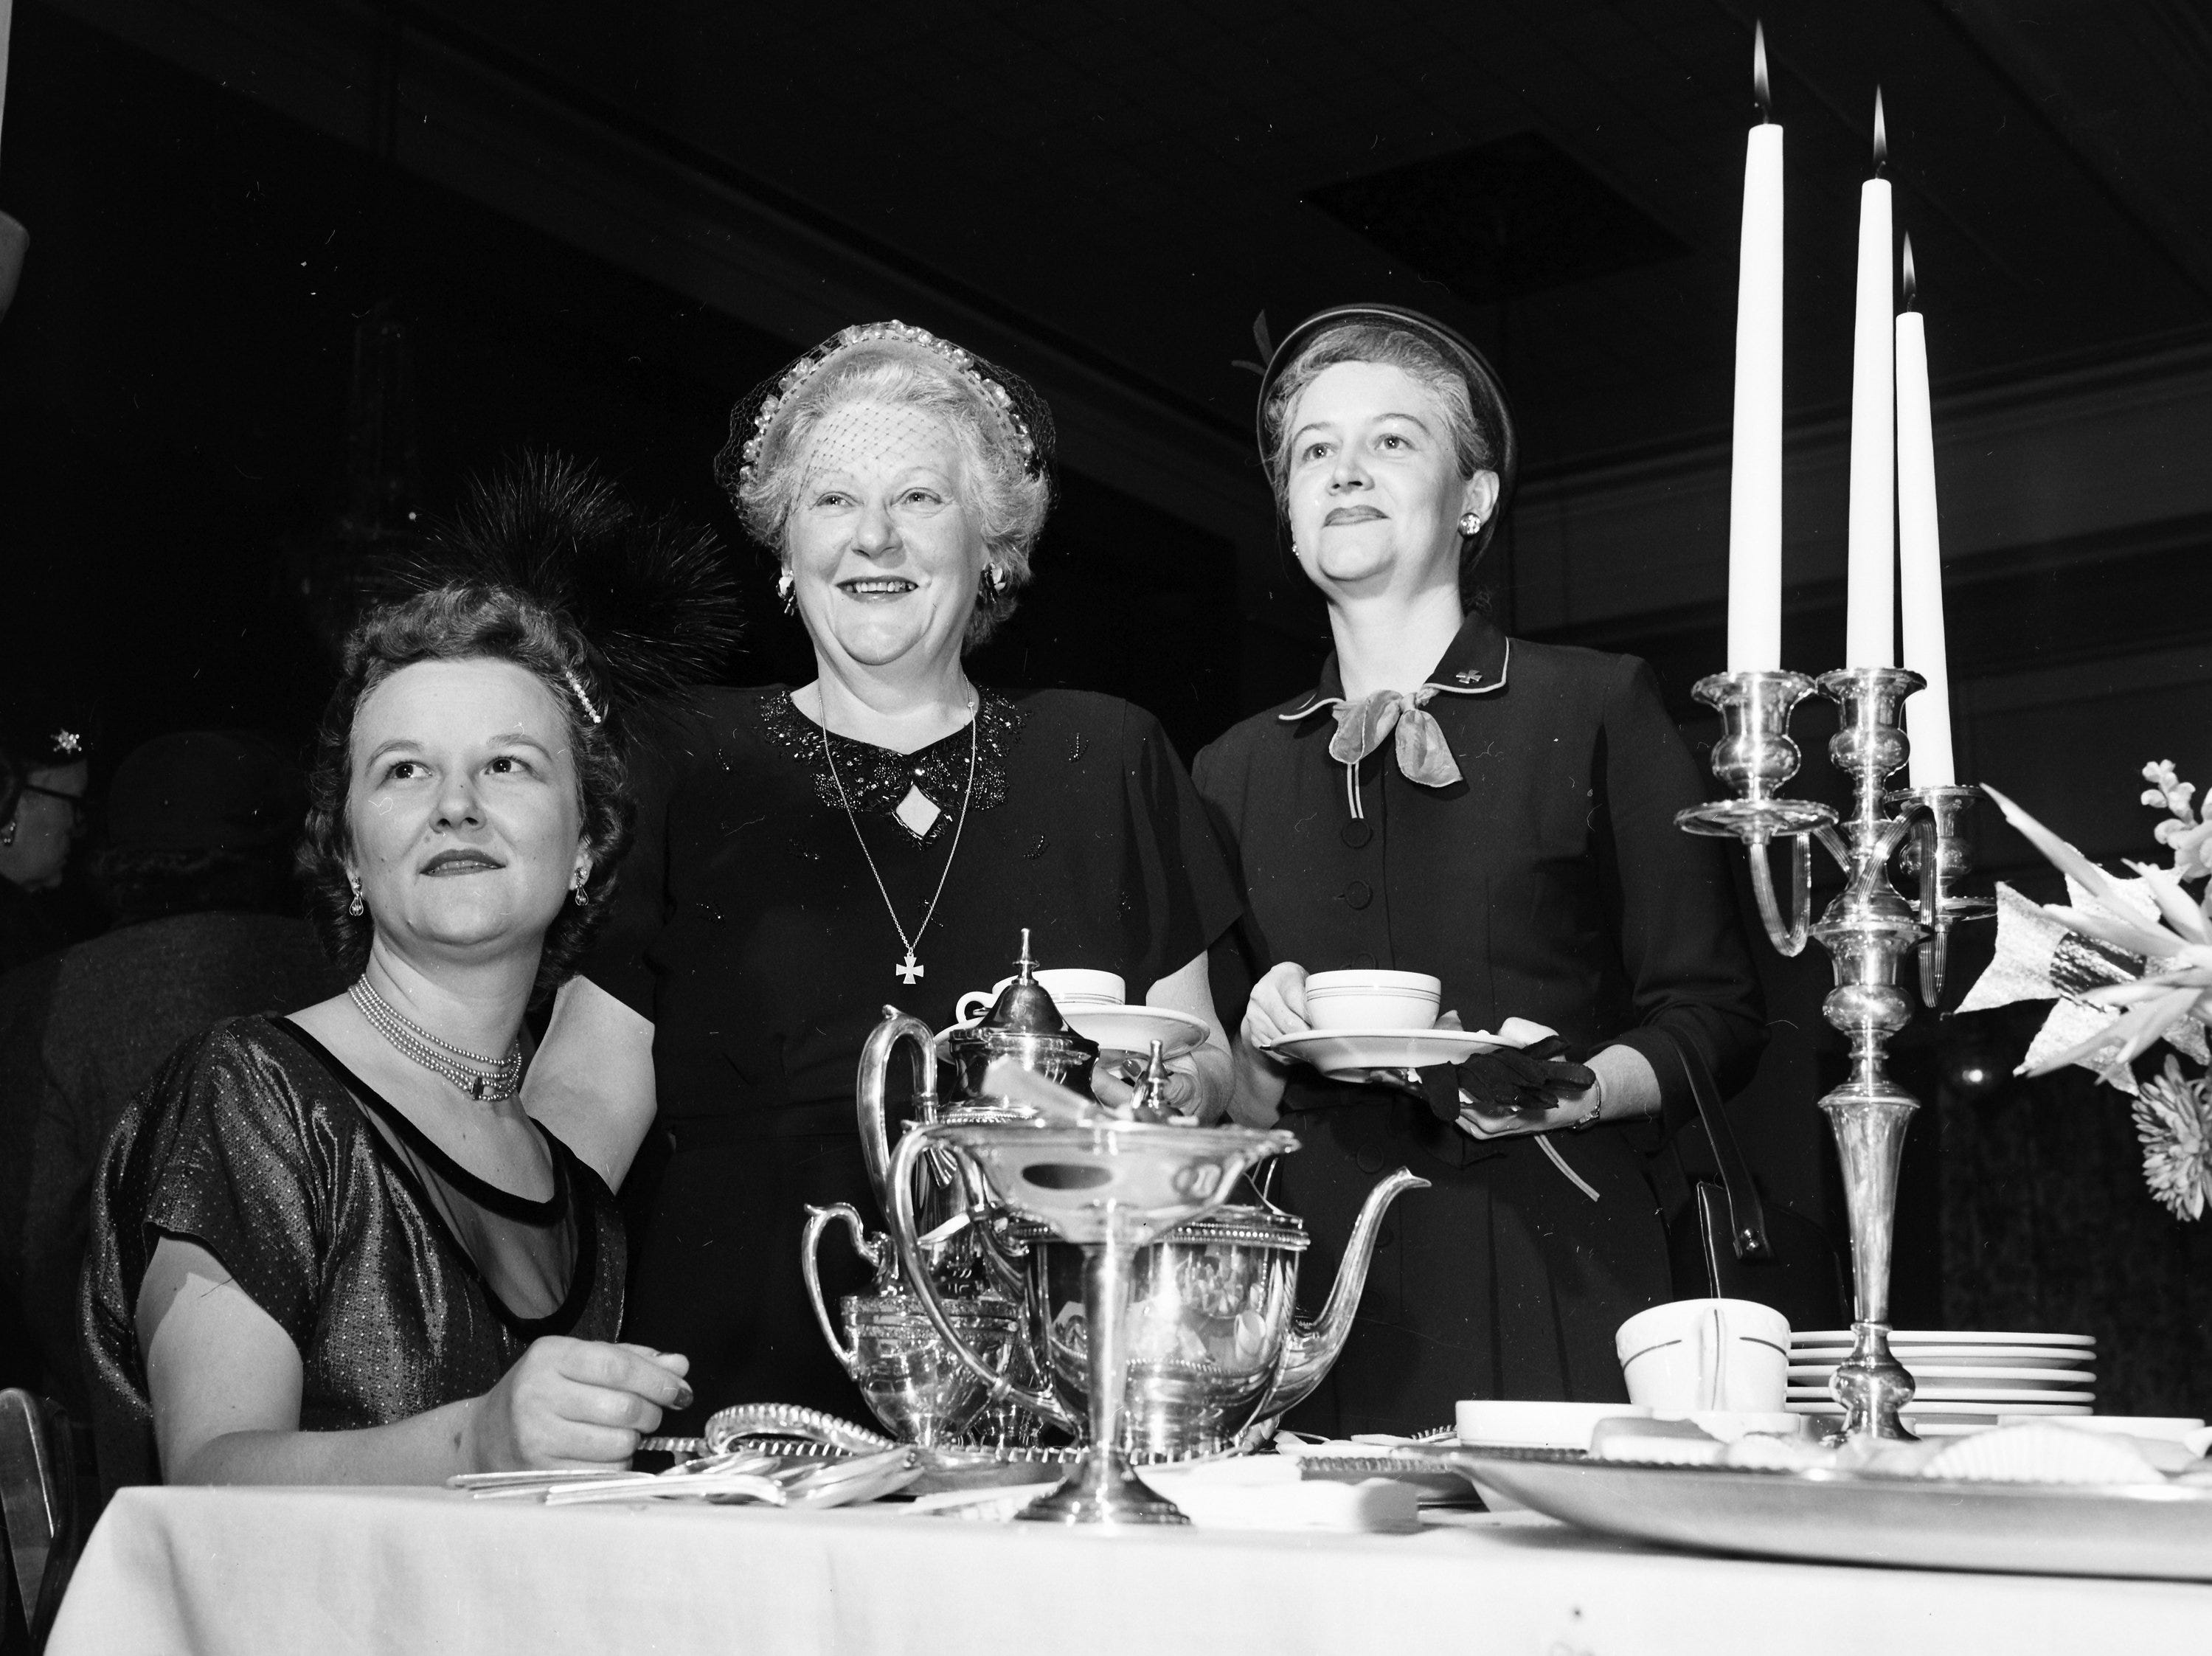 Among the 300 members of The King's Daughters who attended a tea given by the Memphis Union of The King's Daughters in January 1952 were (Left to Right) Mrs. Francis M. Brewer, leader of the Beata Circle; Mrs. Garner Strickland, state president, and Mrs. Kenneth Rhineberger, first vice president of the City Union.  The party took place at the Nineteenth Century Club with members of the Beata Circle serving as hostesses.